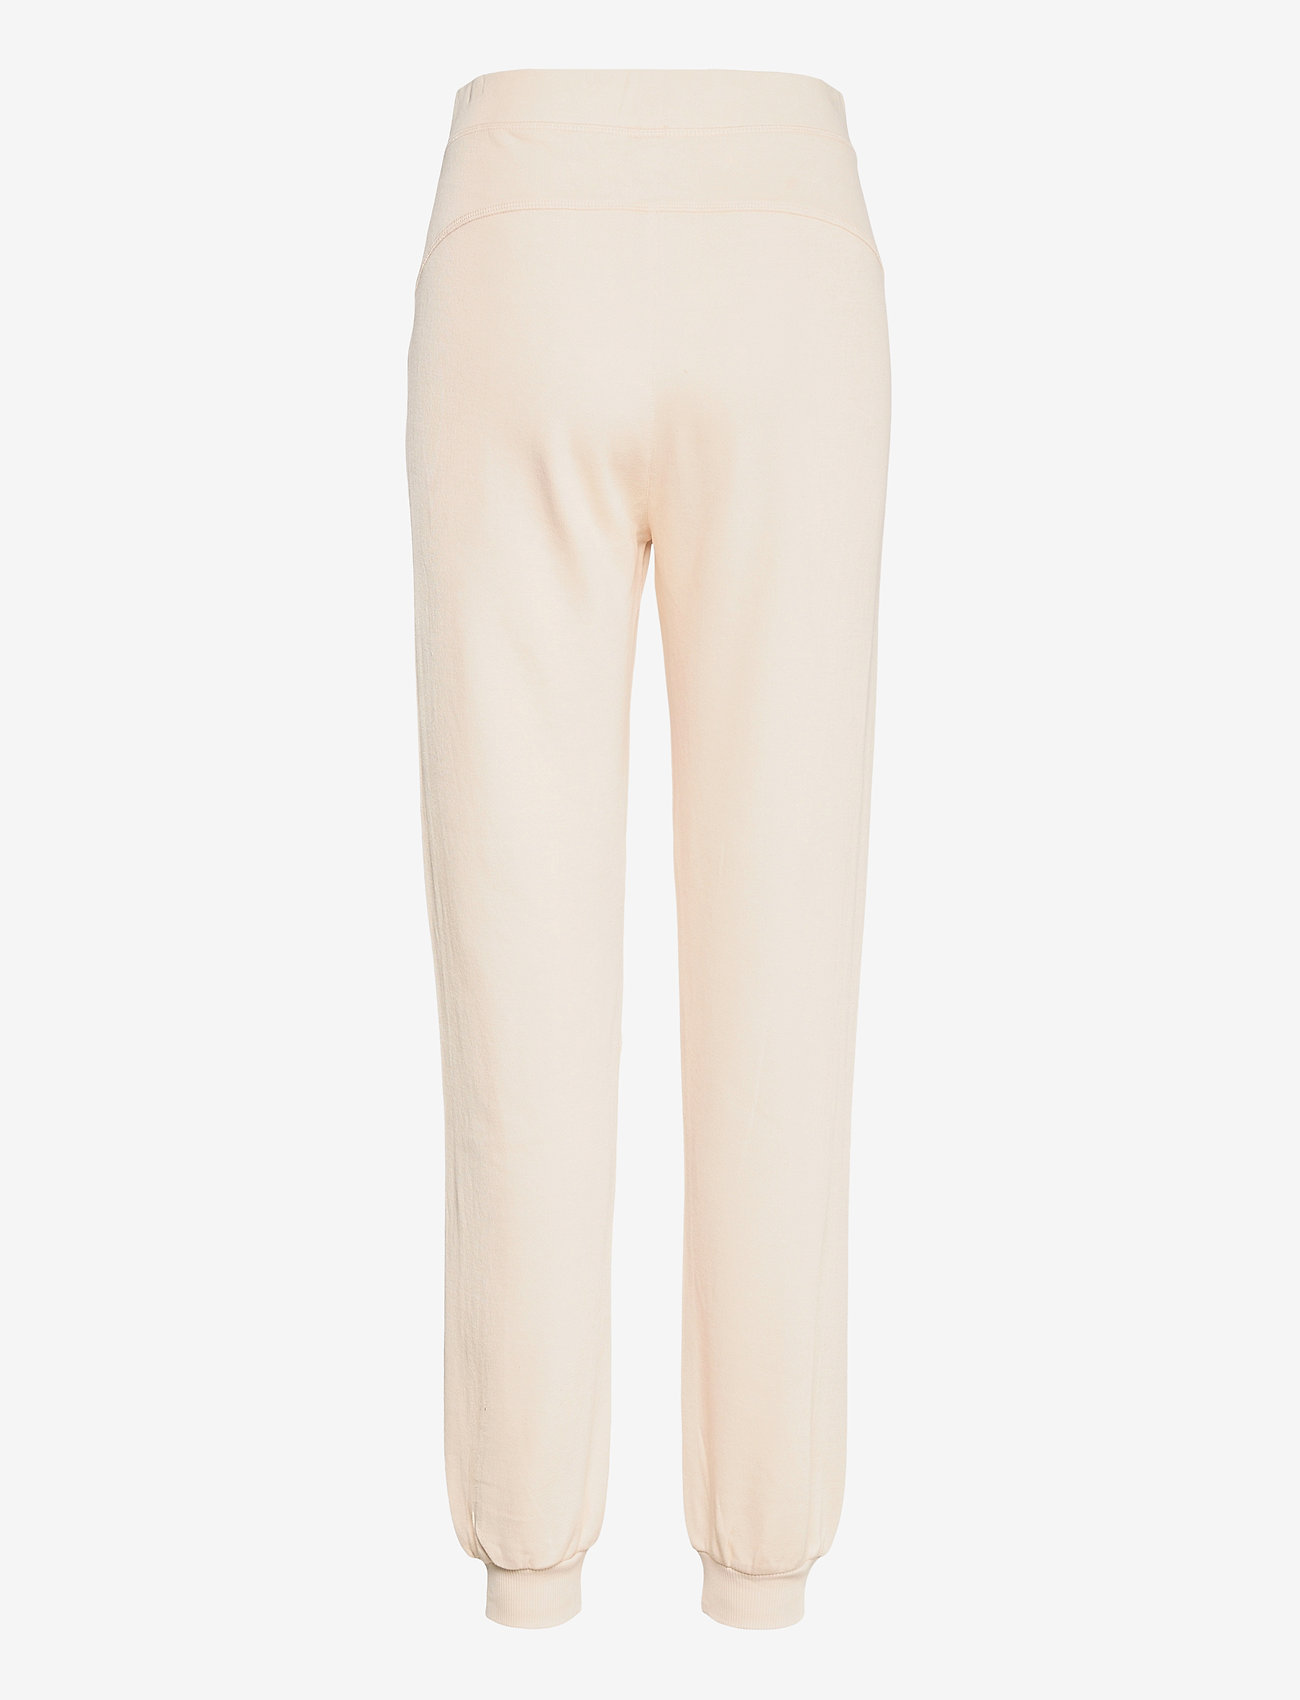 Day Birger et Mikkelsen - Day Spin - sweatpants - ivory - 1